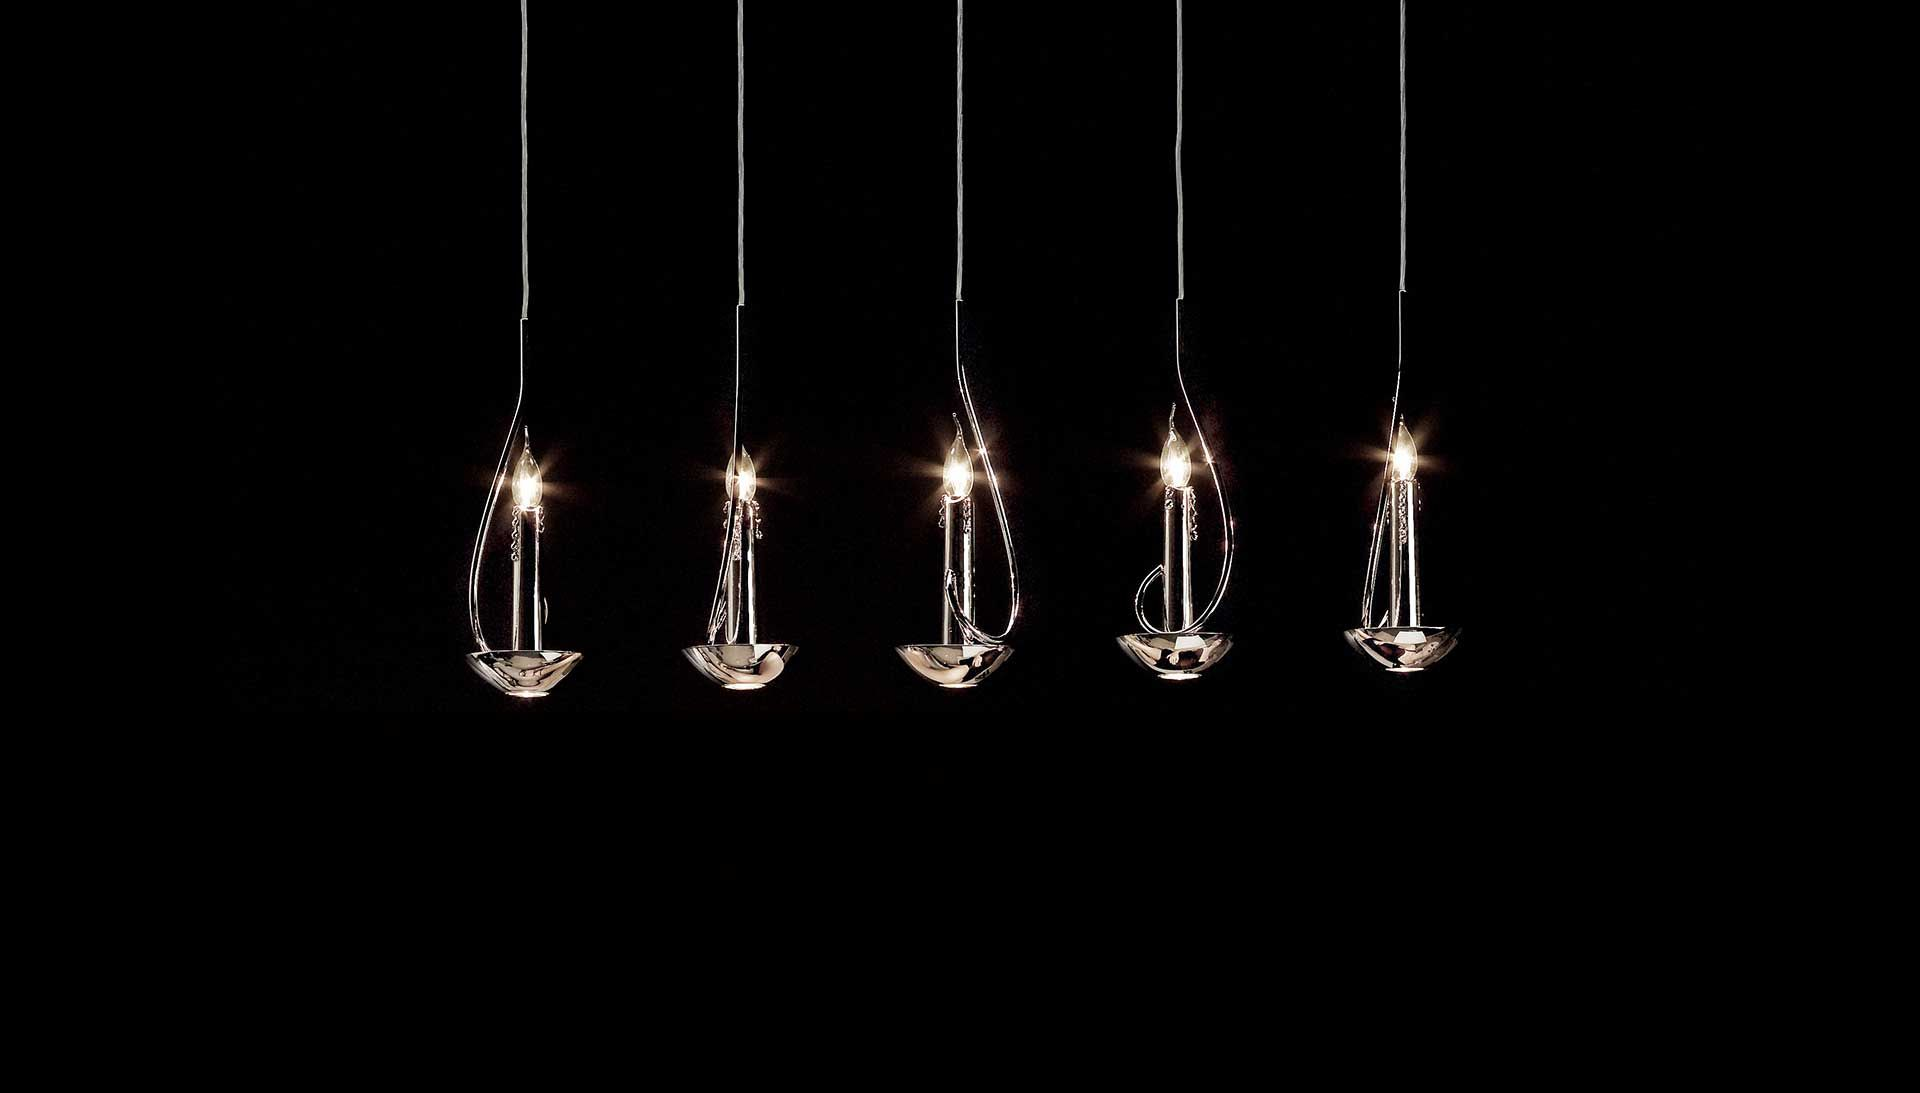 Brand Van Egmond Floating Candles.Floating Candles Chandelier Stainless Steel Designed By William